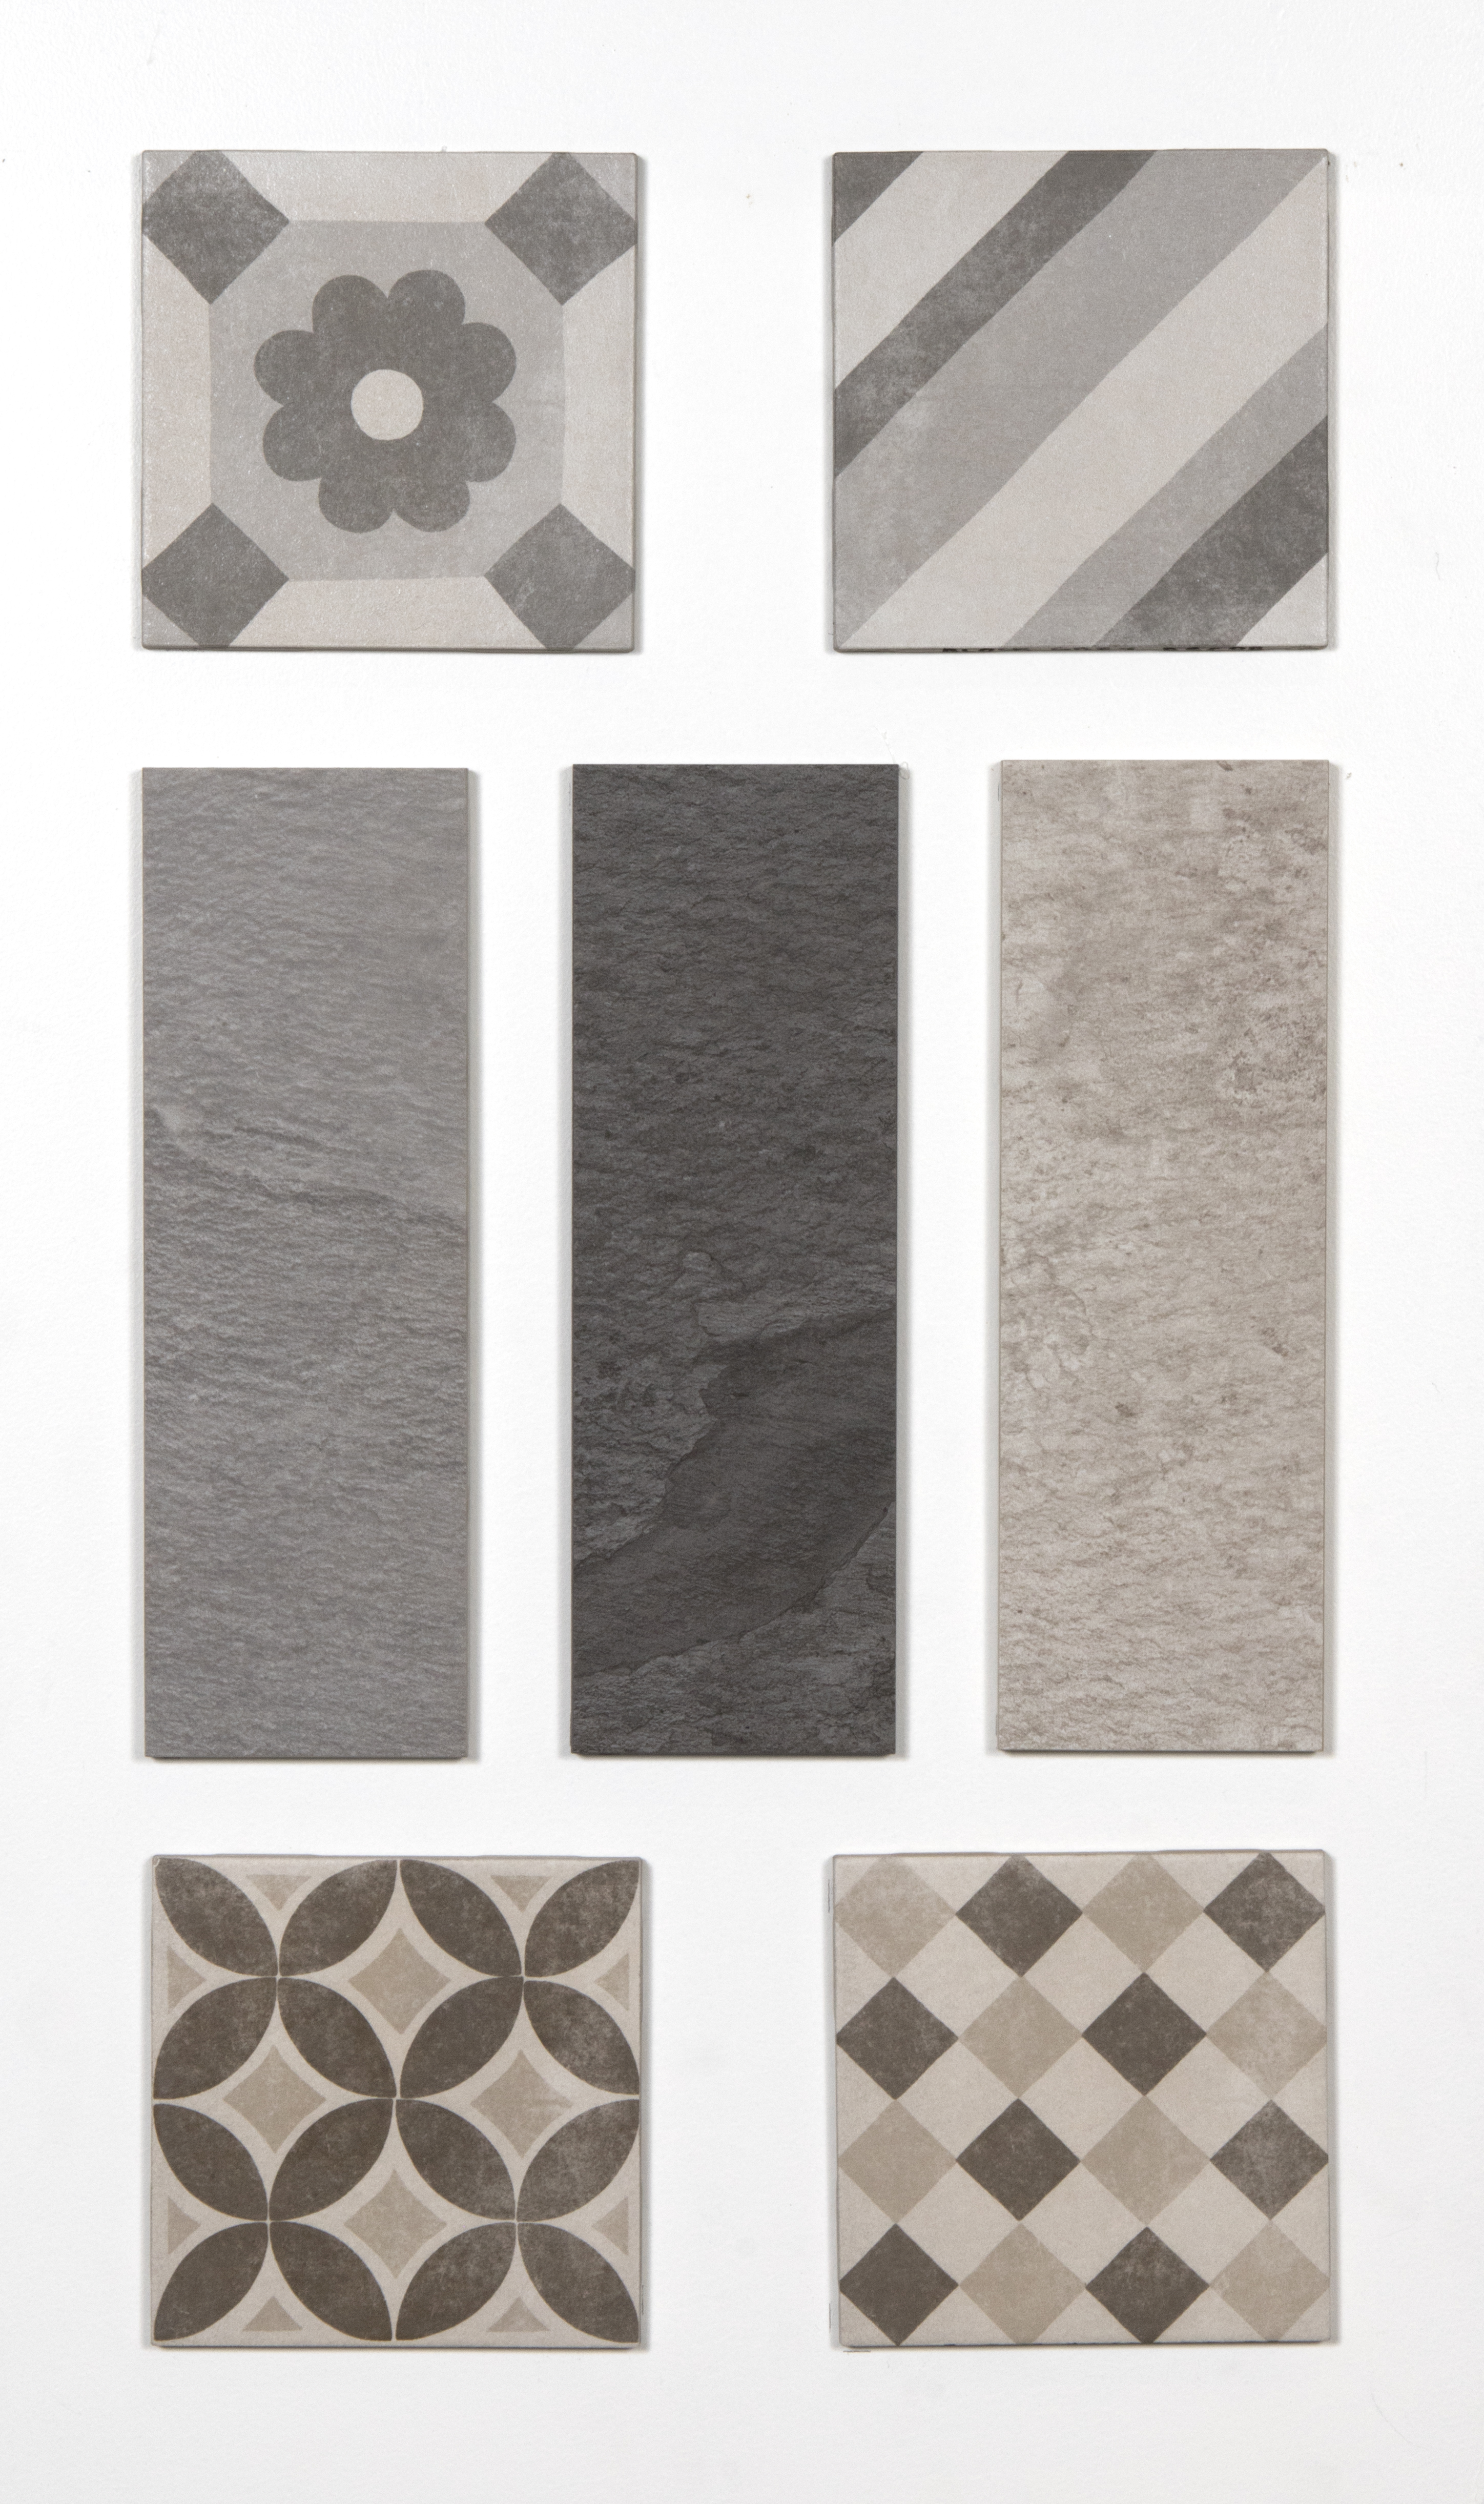 Porcelain tiles ceramic tiles ottawa ottawa tile vesta learn about our products dailygadgetfo Image collections